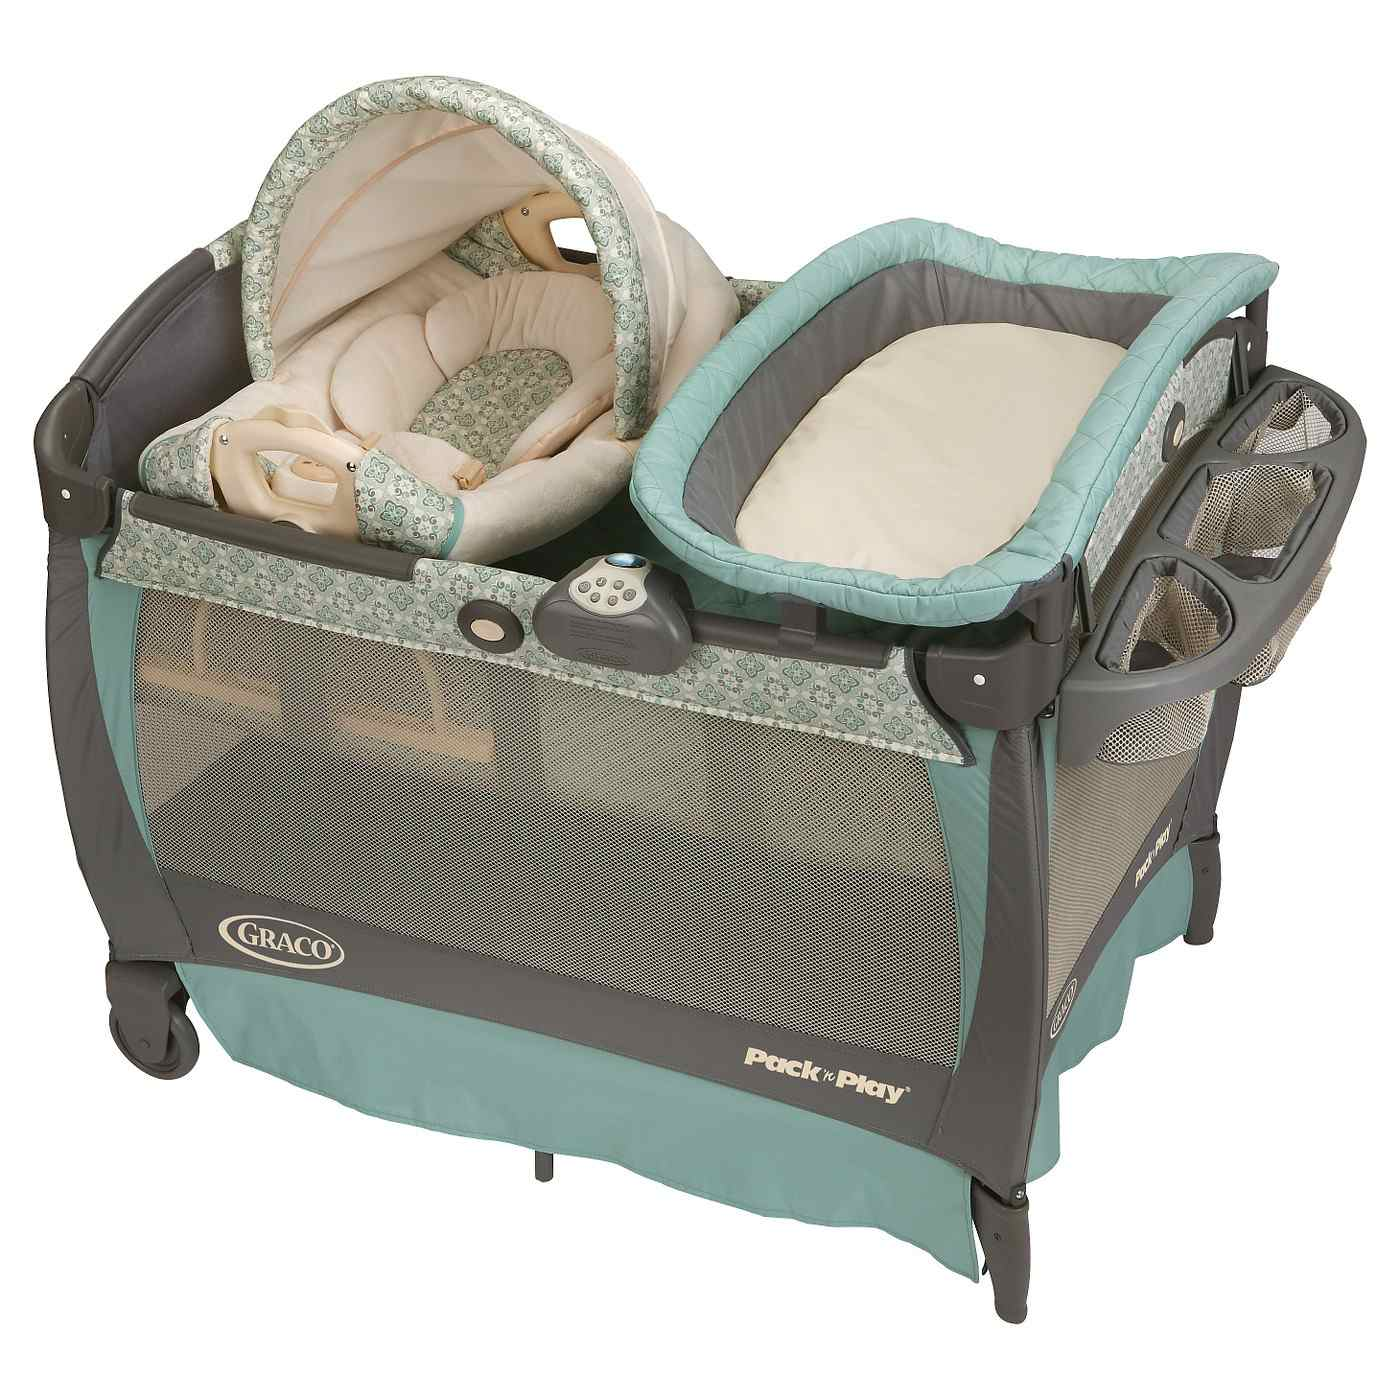 Best Overall GracoR Pack N Play With Cuddle Cove Removable Seat Changer